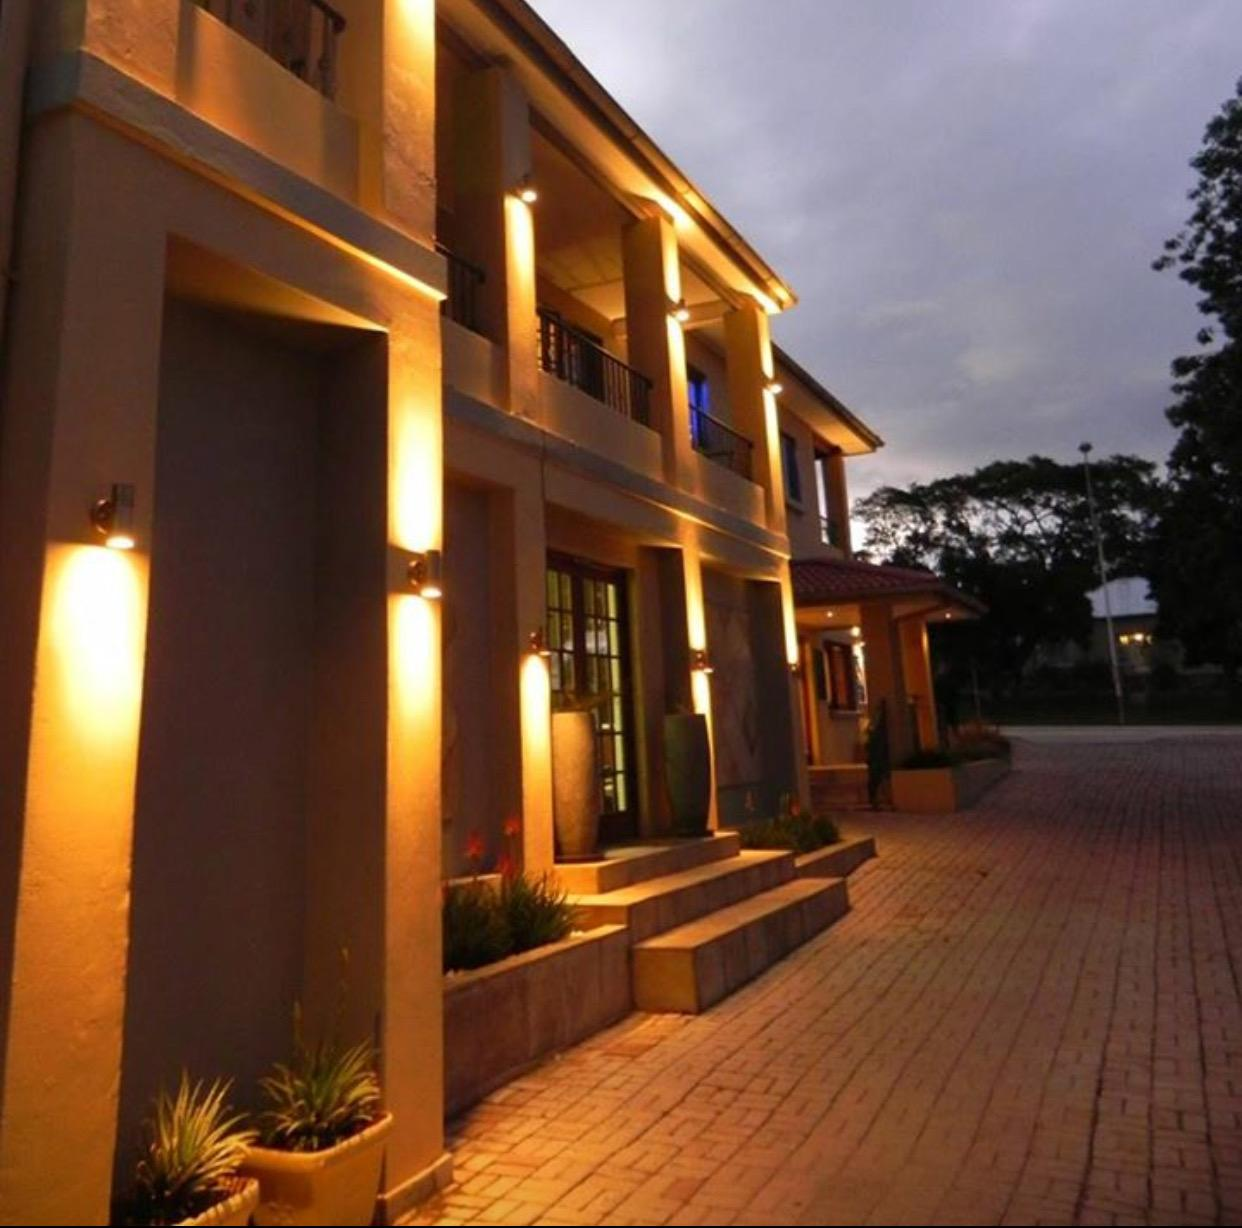 VJ's Guesthouse And Restaurant